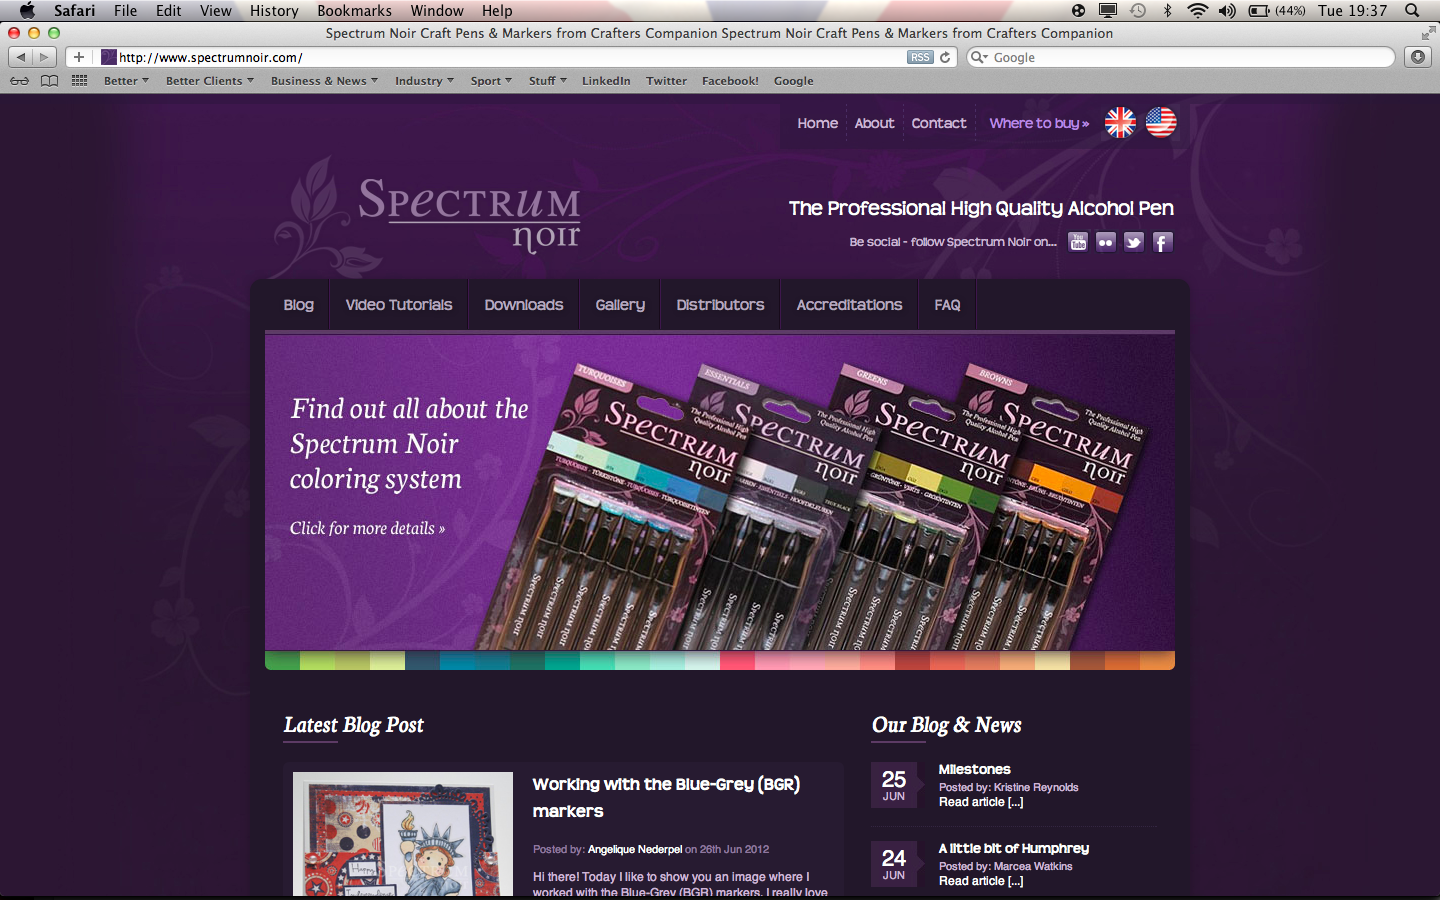 Spectrum Noir Website - www.spectrumnoir.com